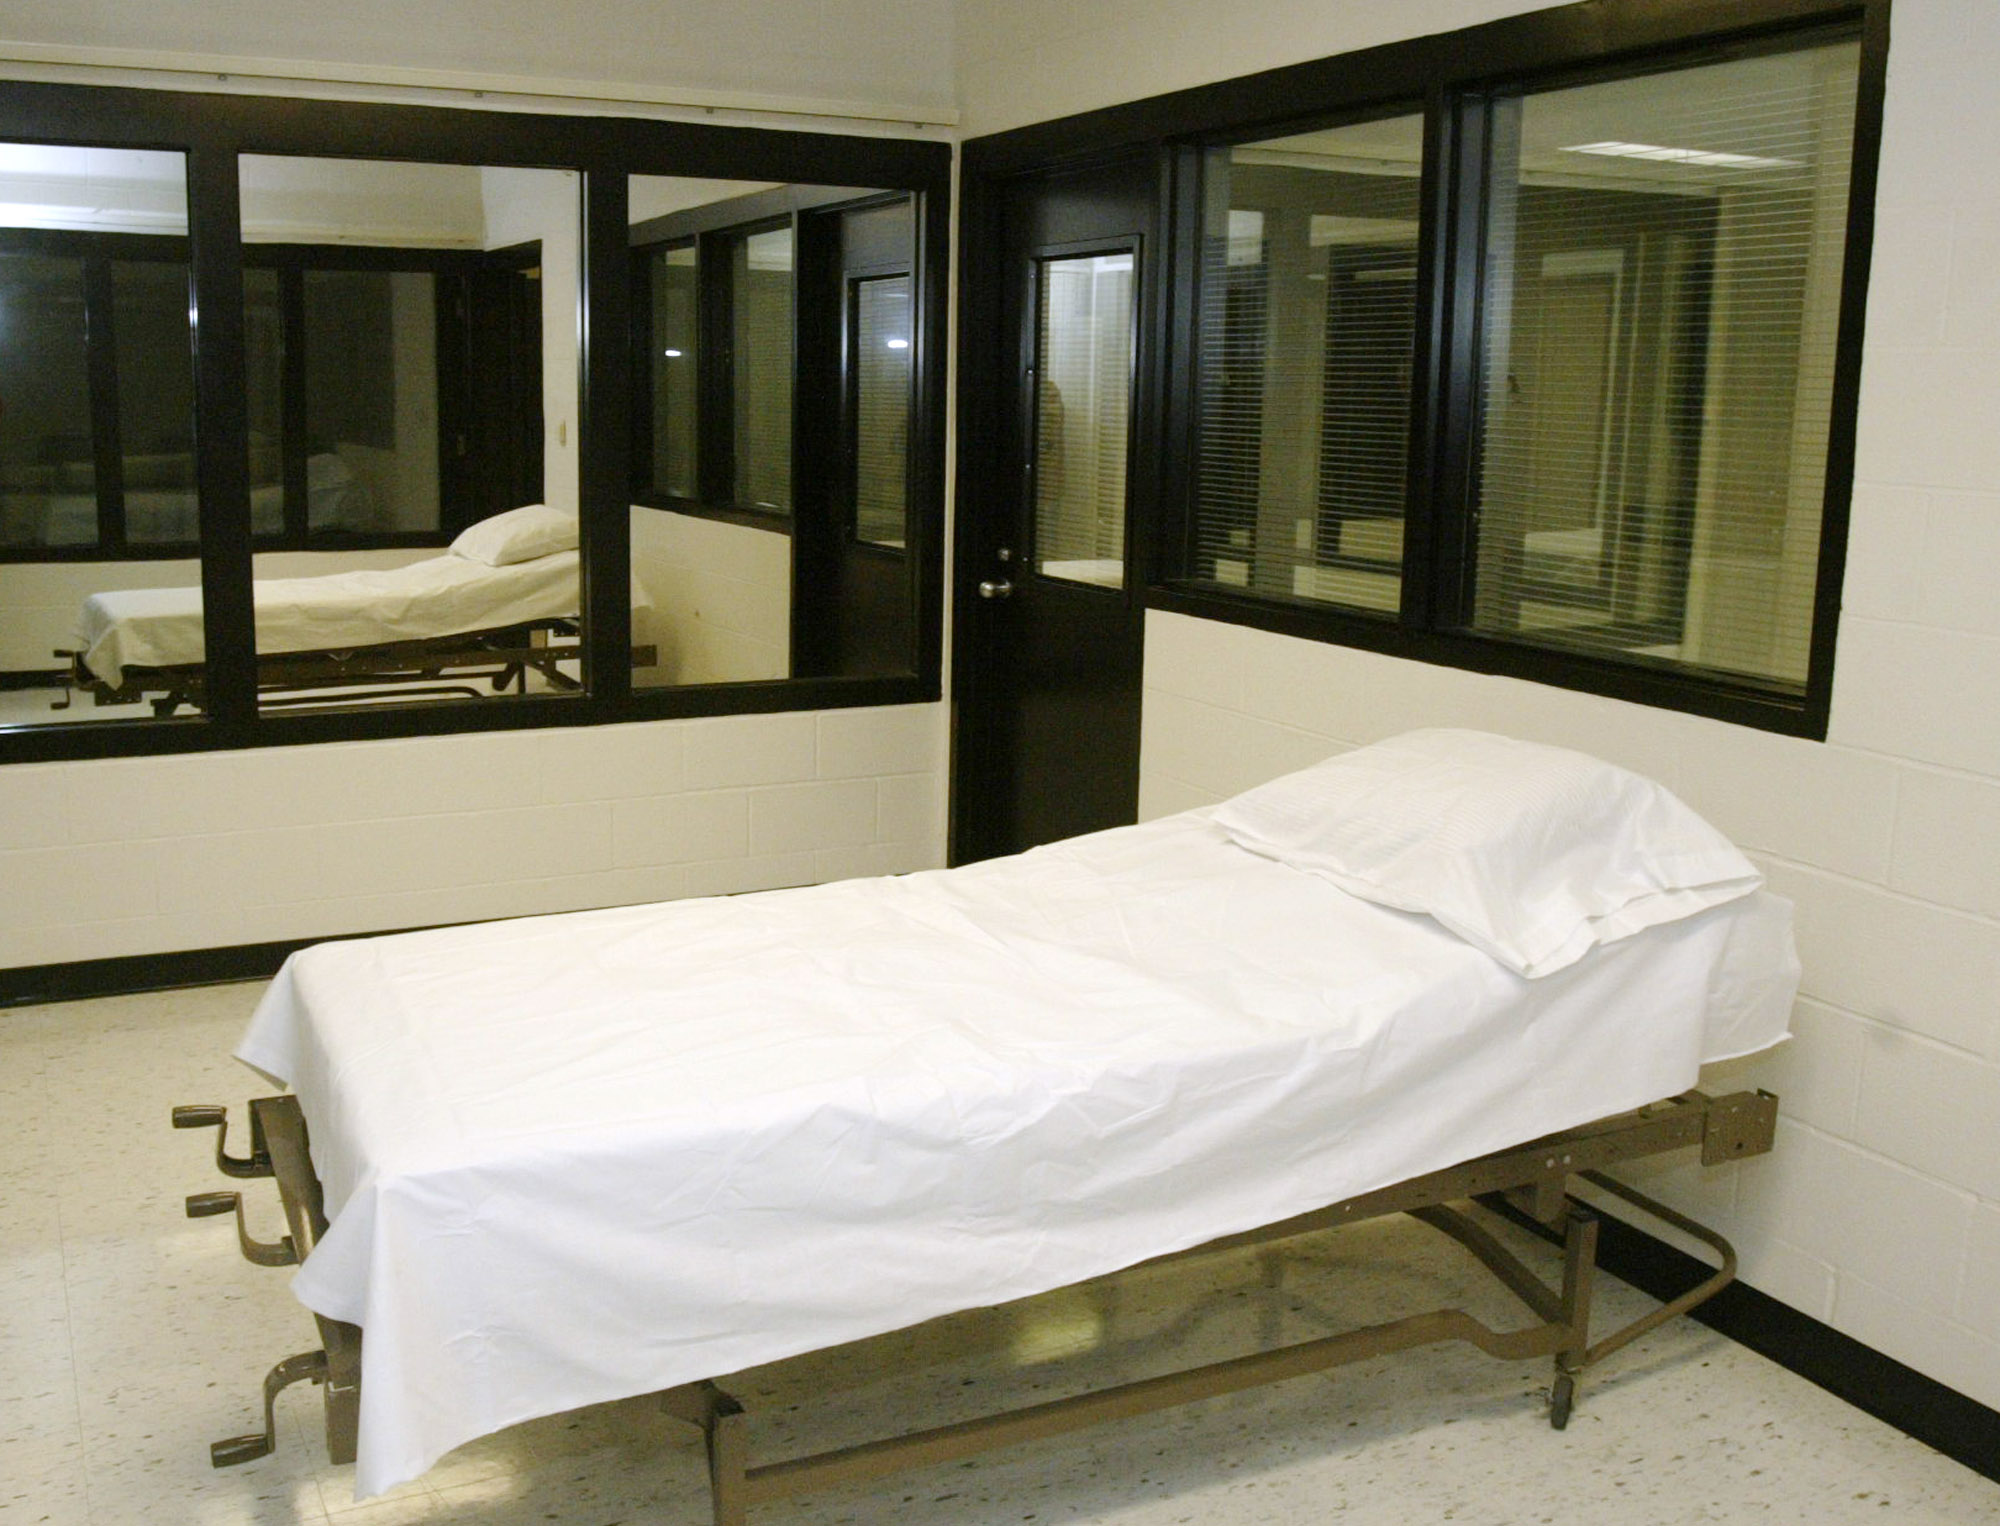 Morality Aside The Death Penalty Is A Bad Idea Politics